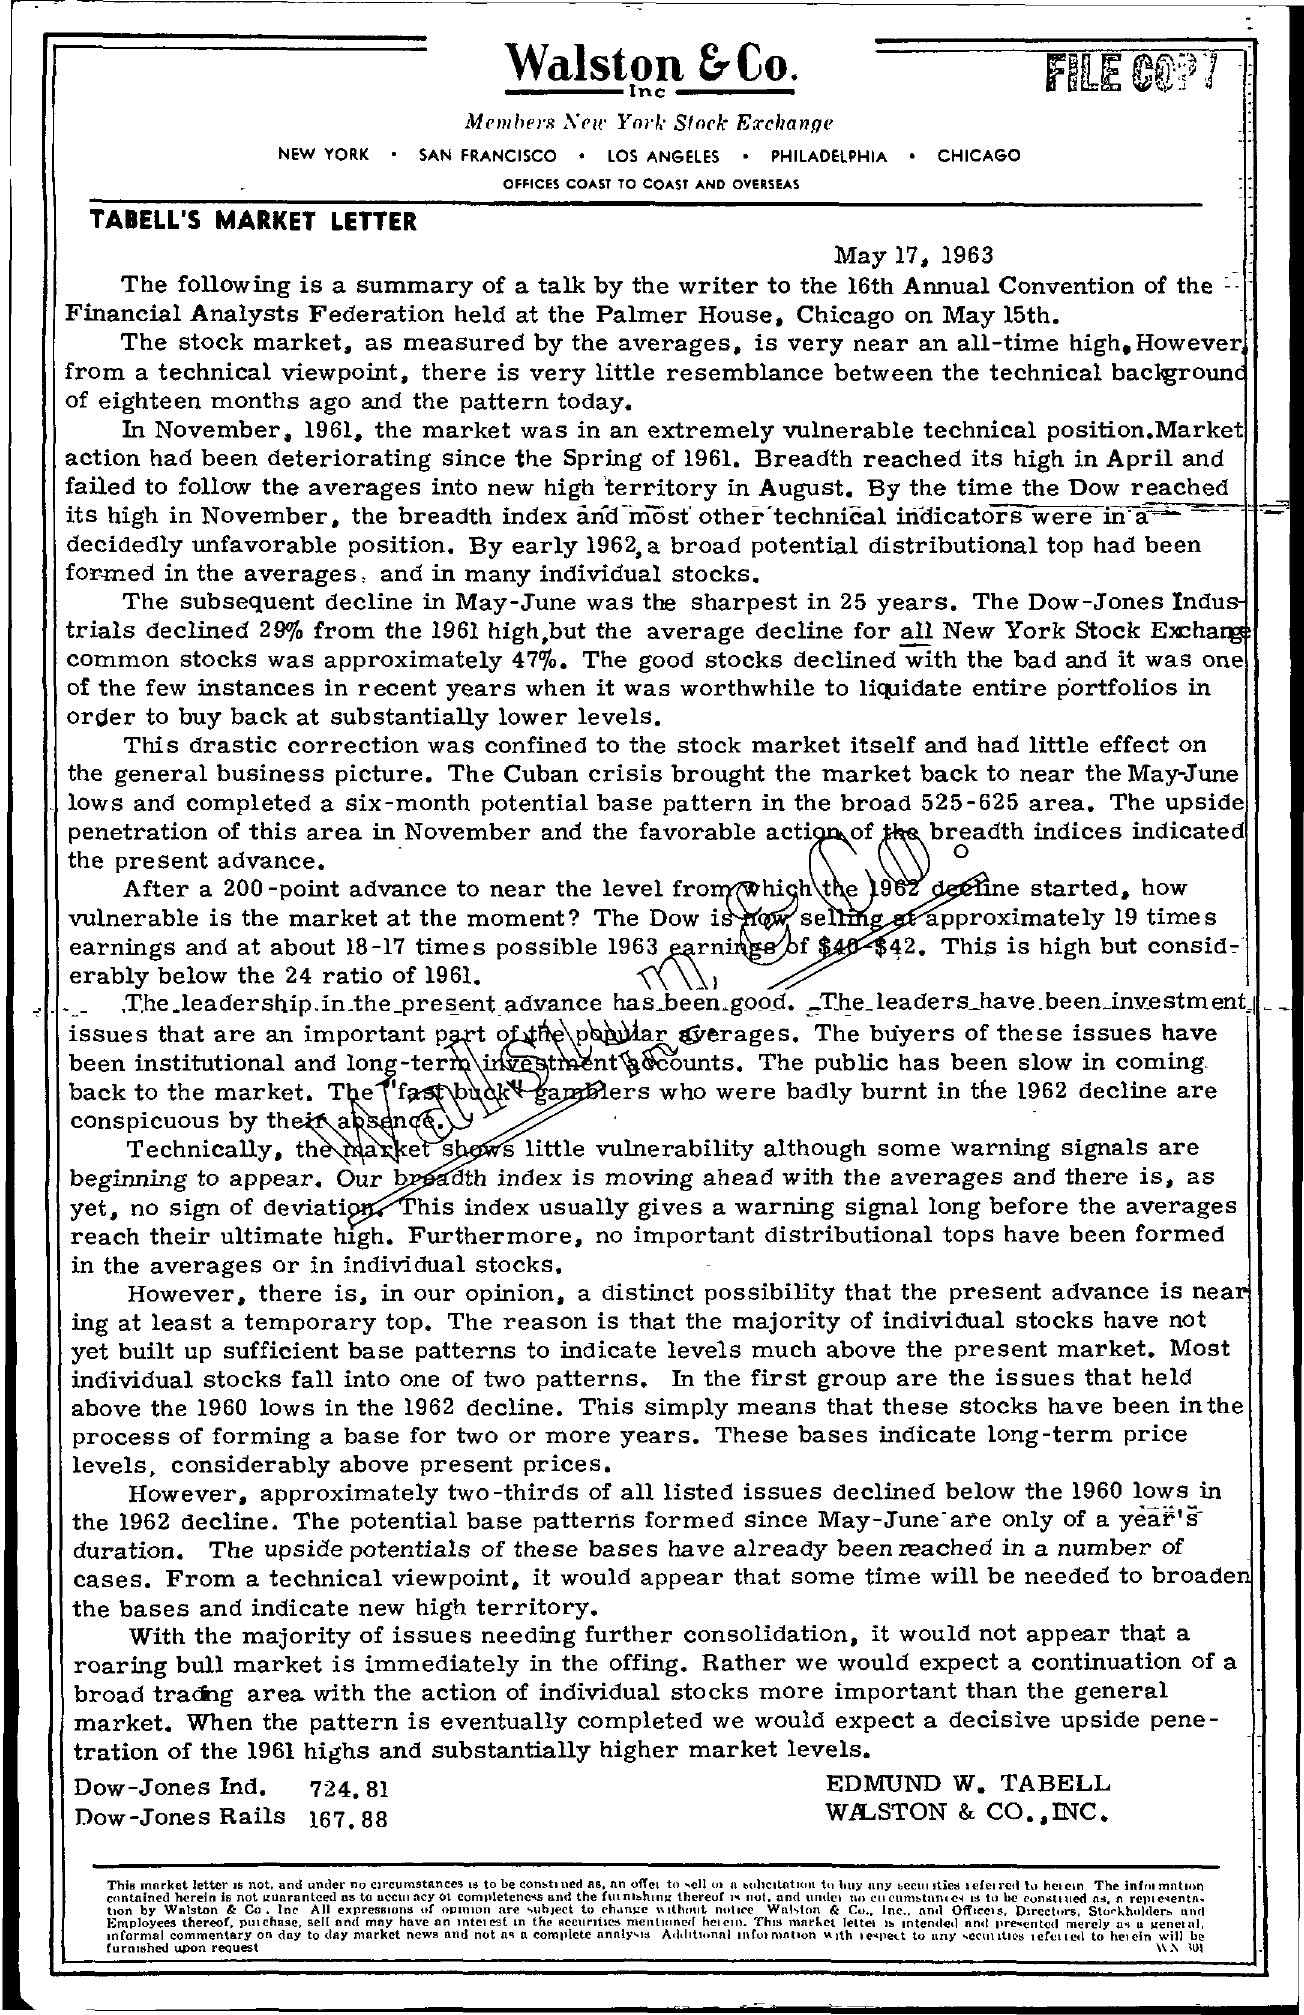 Tabell's Market Letter - May 17, 1963